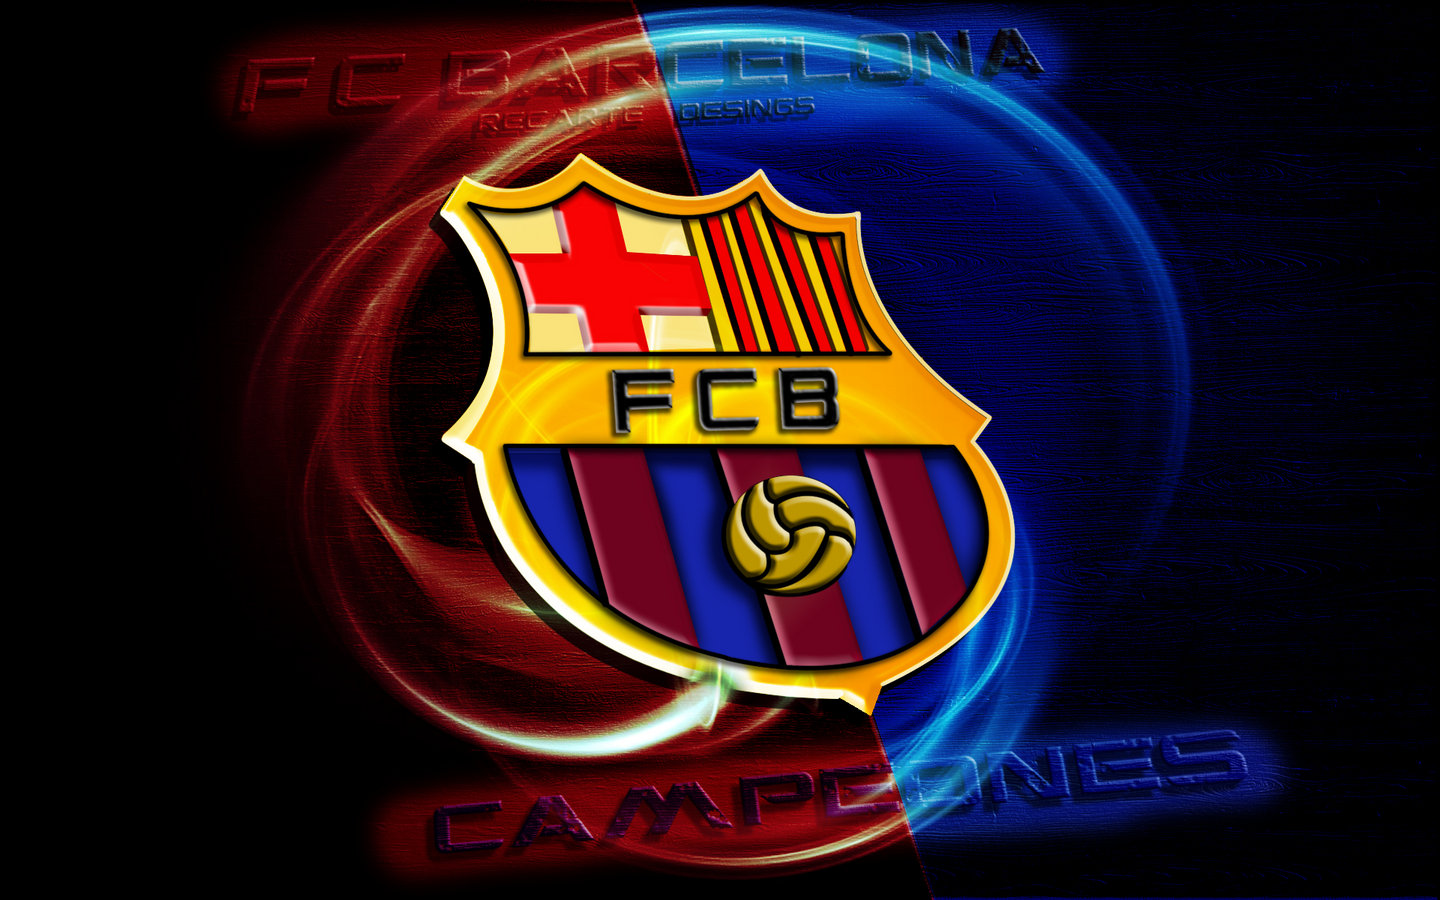 Wallpaper Fc Barcelona 2017 >> Barcelona Logo 2013 Wallpapers | FOOTBALL STARS WORLD